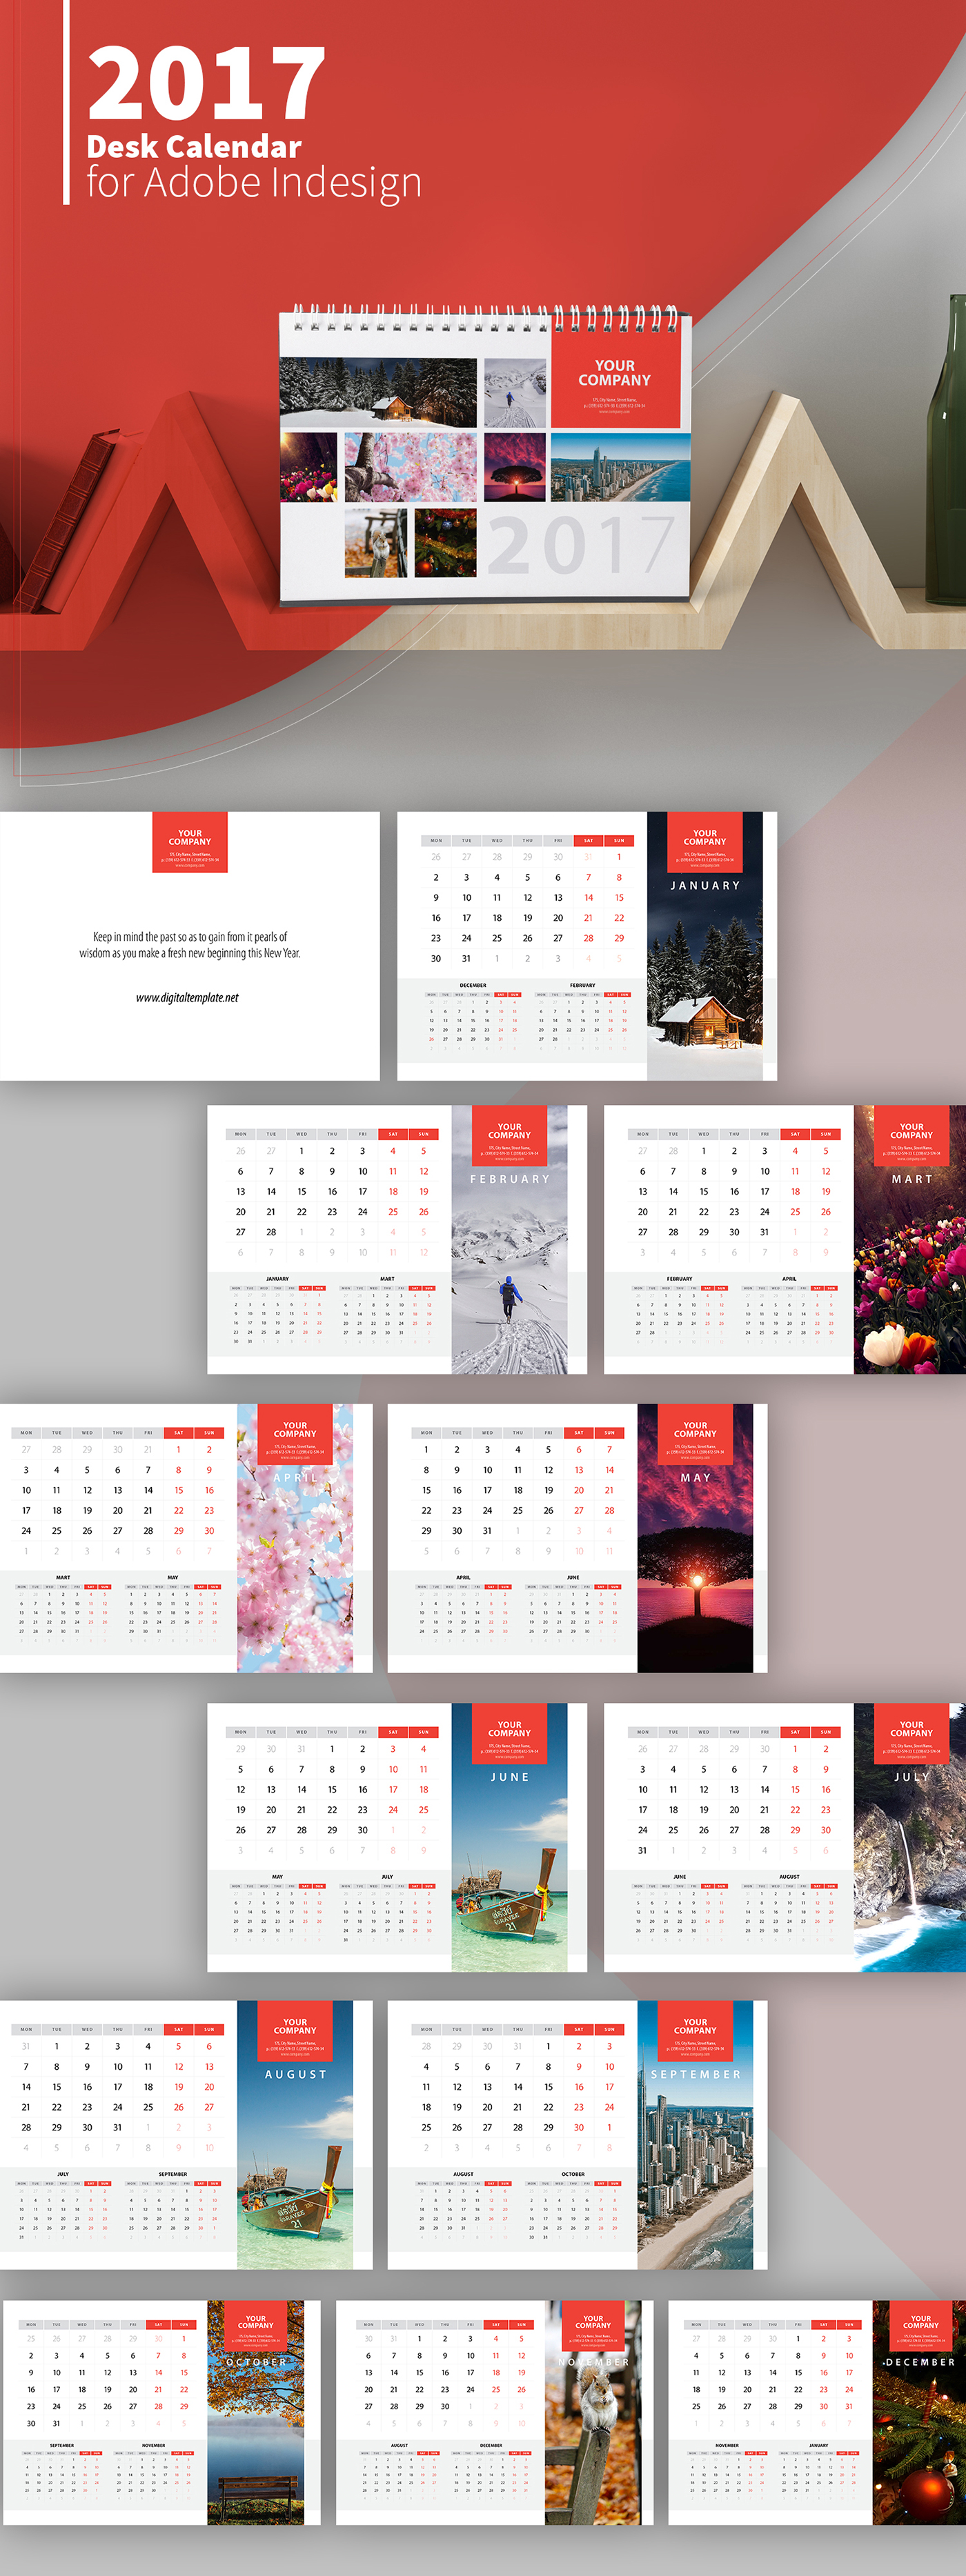 Freebie 2017 Desk Calendar Template on Behance